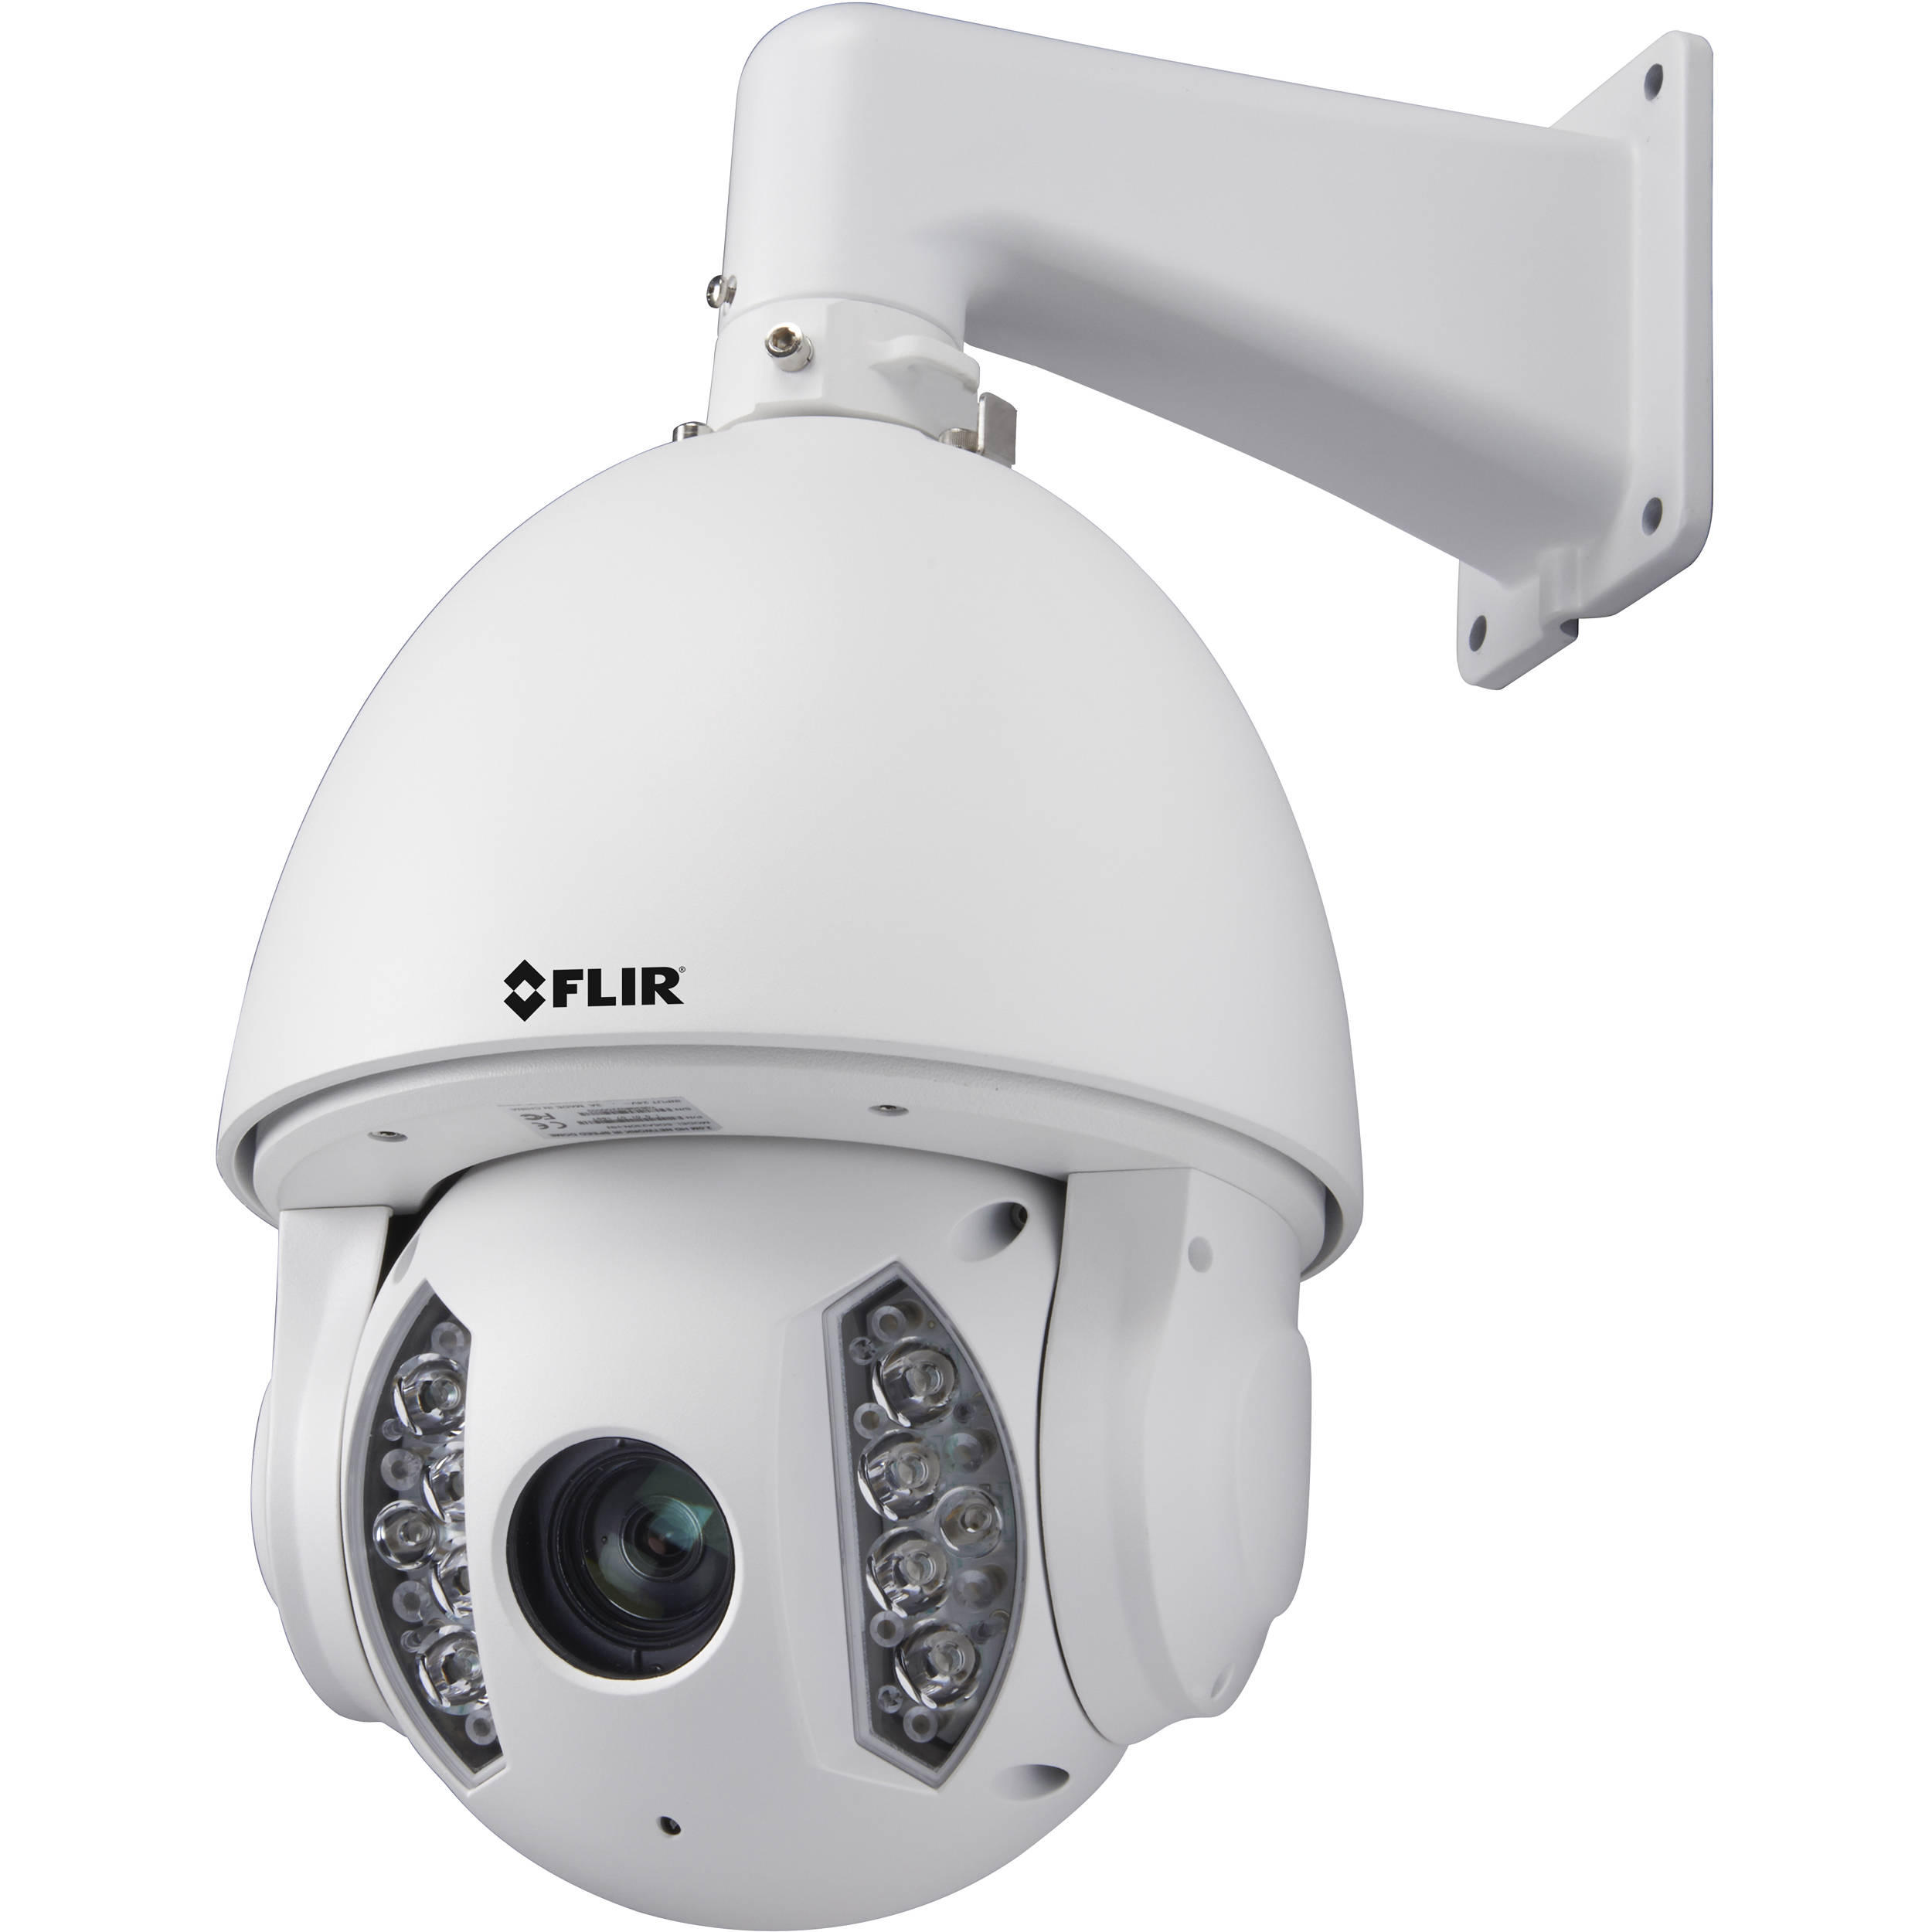 Ip Video Inter s in addition Selecting The Right Equipment For Your Ip Camera Surveillance System in addition Cctv Ups Systems also Bosch Security Vg5 7130 Epc4 Autodome Starlight 7000 Hd besides 2 Megapixel 1080p  work Ptz Camera Module  E2 80 93 Hisilicon Soc. on outdoor ptz ip camera